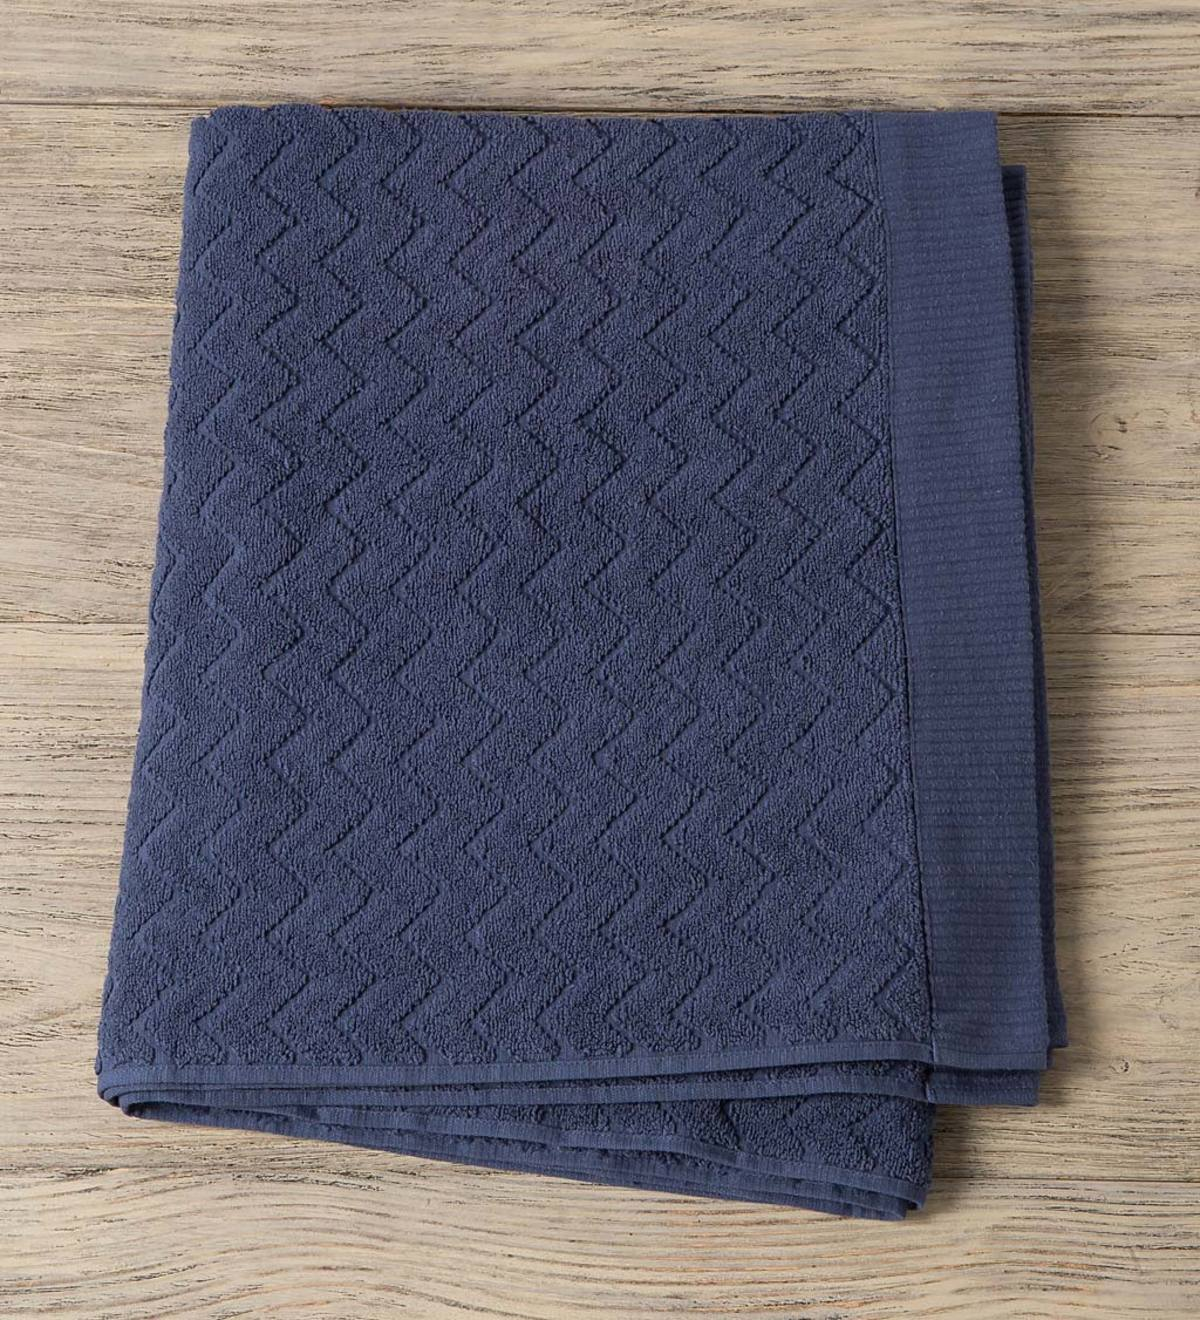 Chevron Cotton Velour Bath Towel - Blue